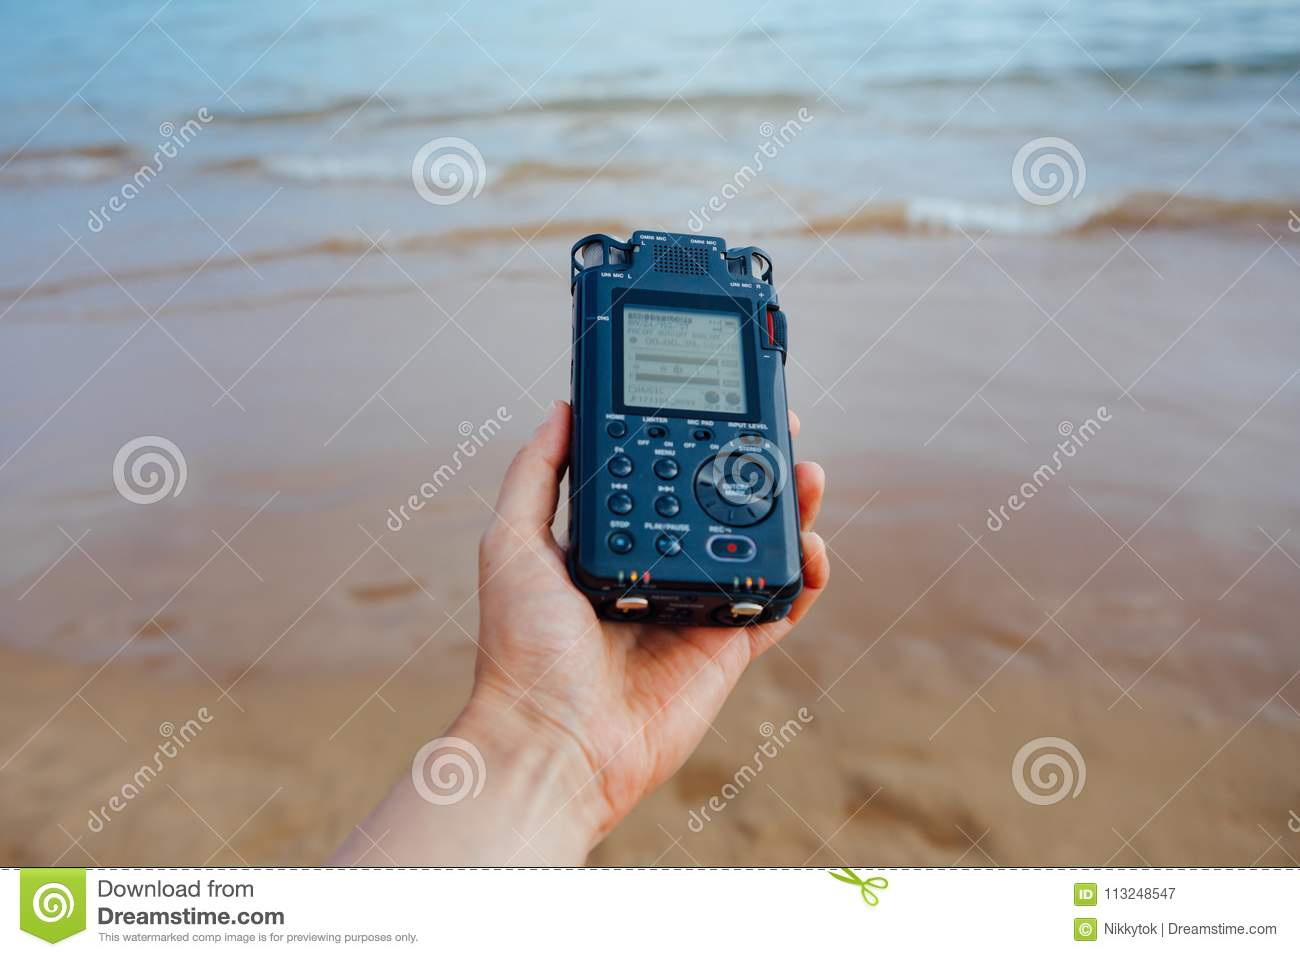 Portable Audio Recorder In Hand Recording Ambient Sounds Of